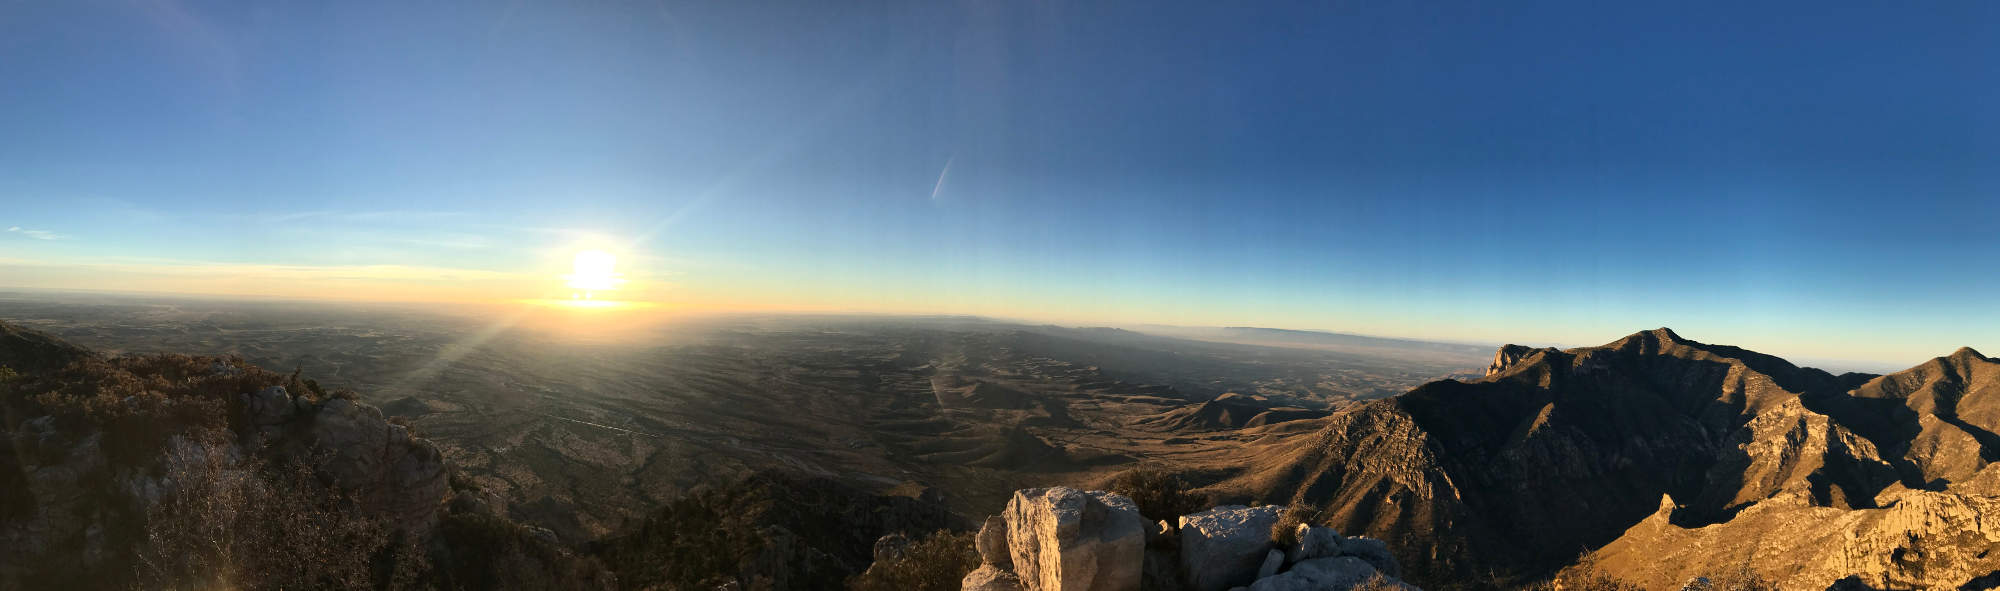 Hunter Peak Sunrise